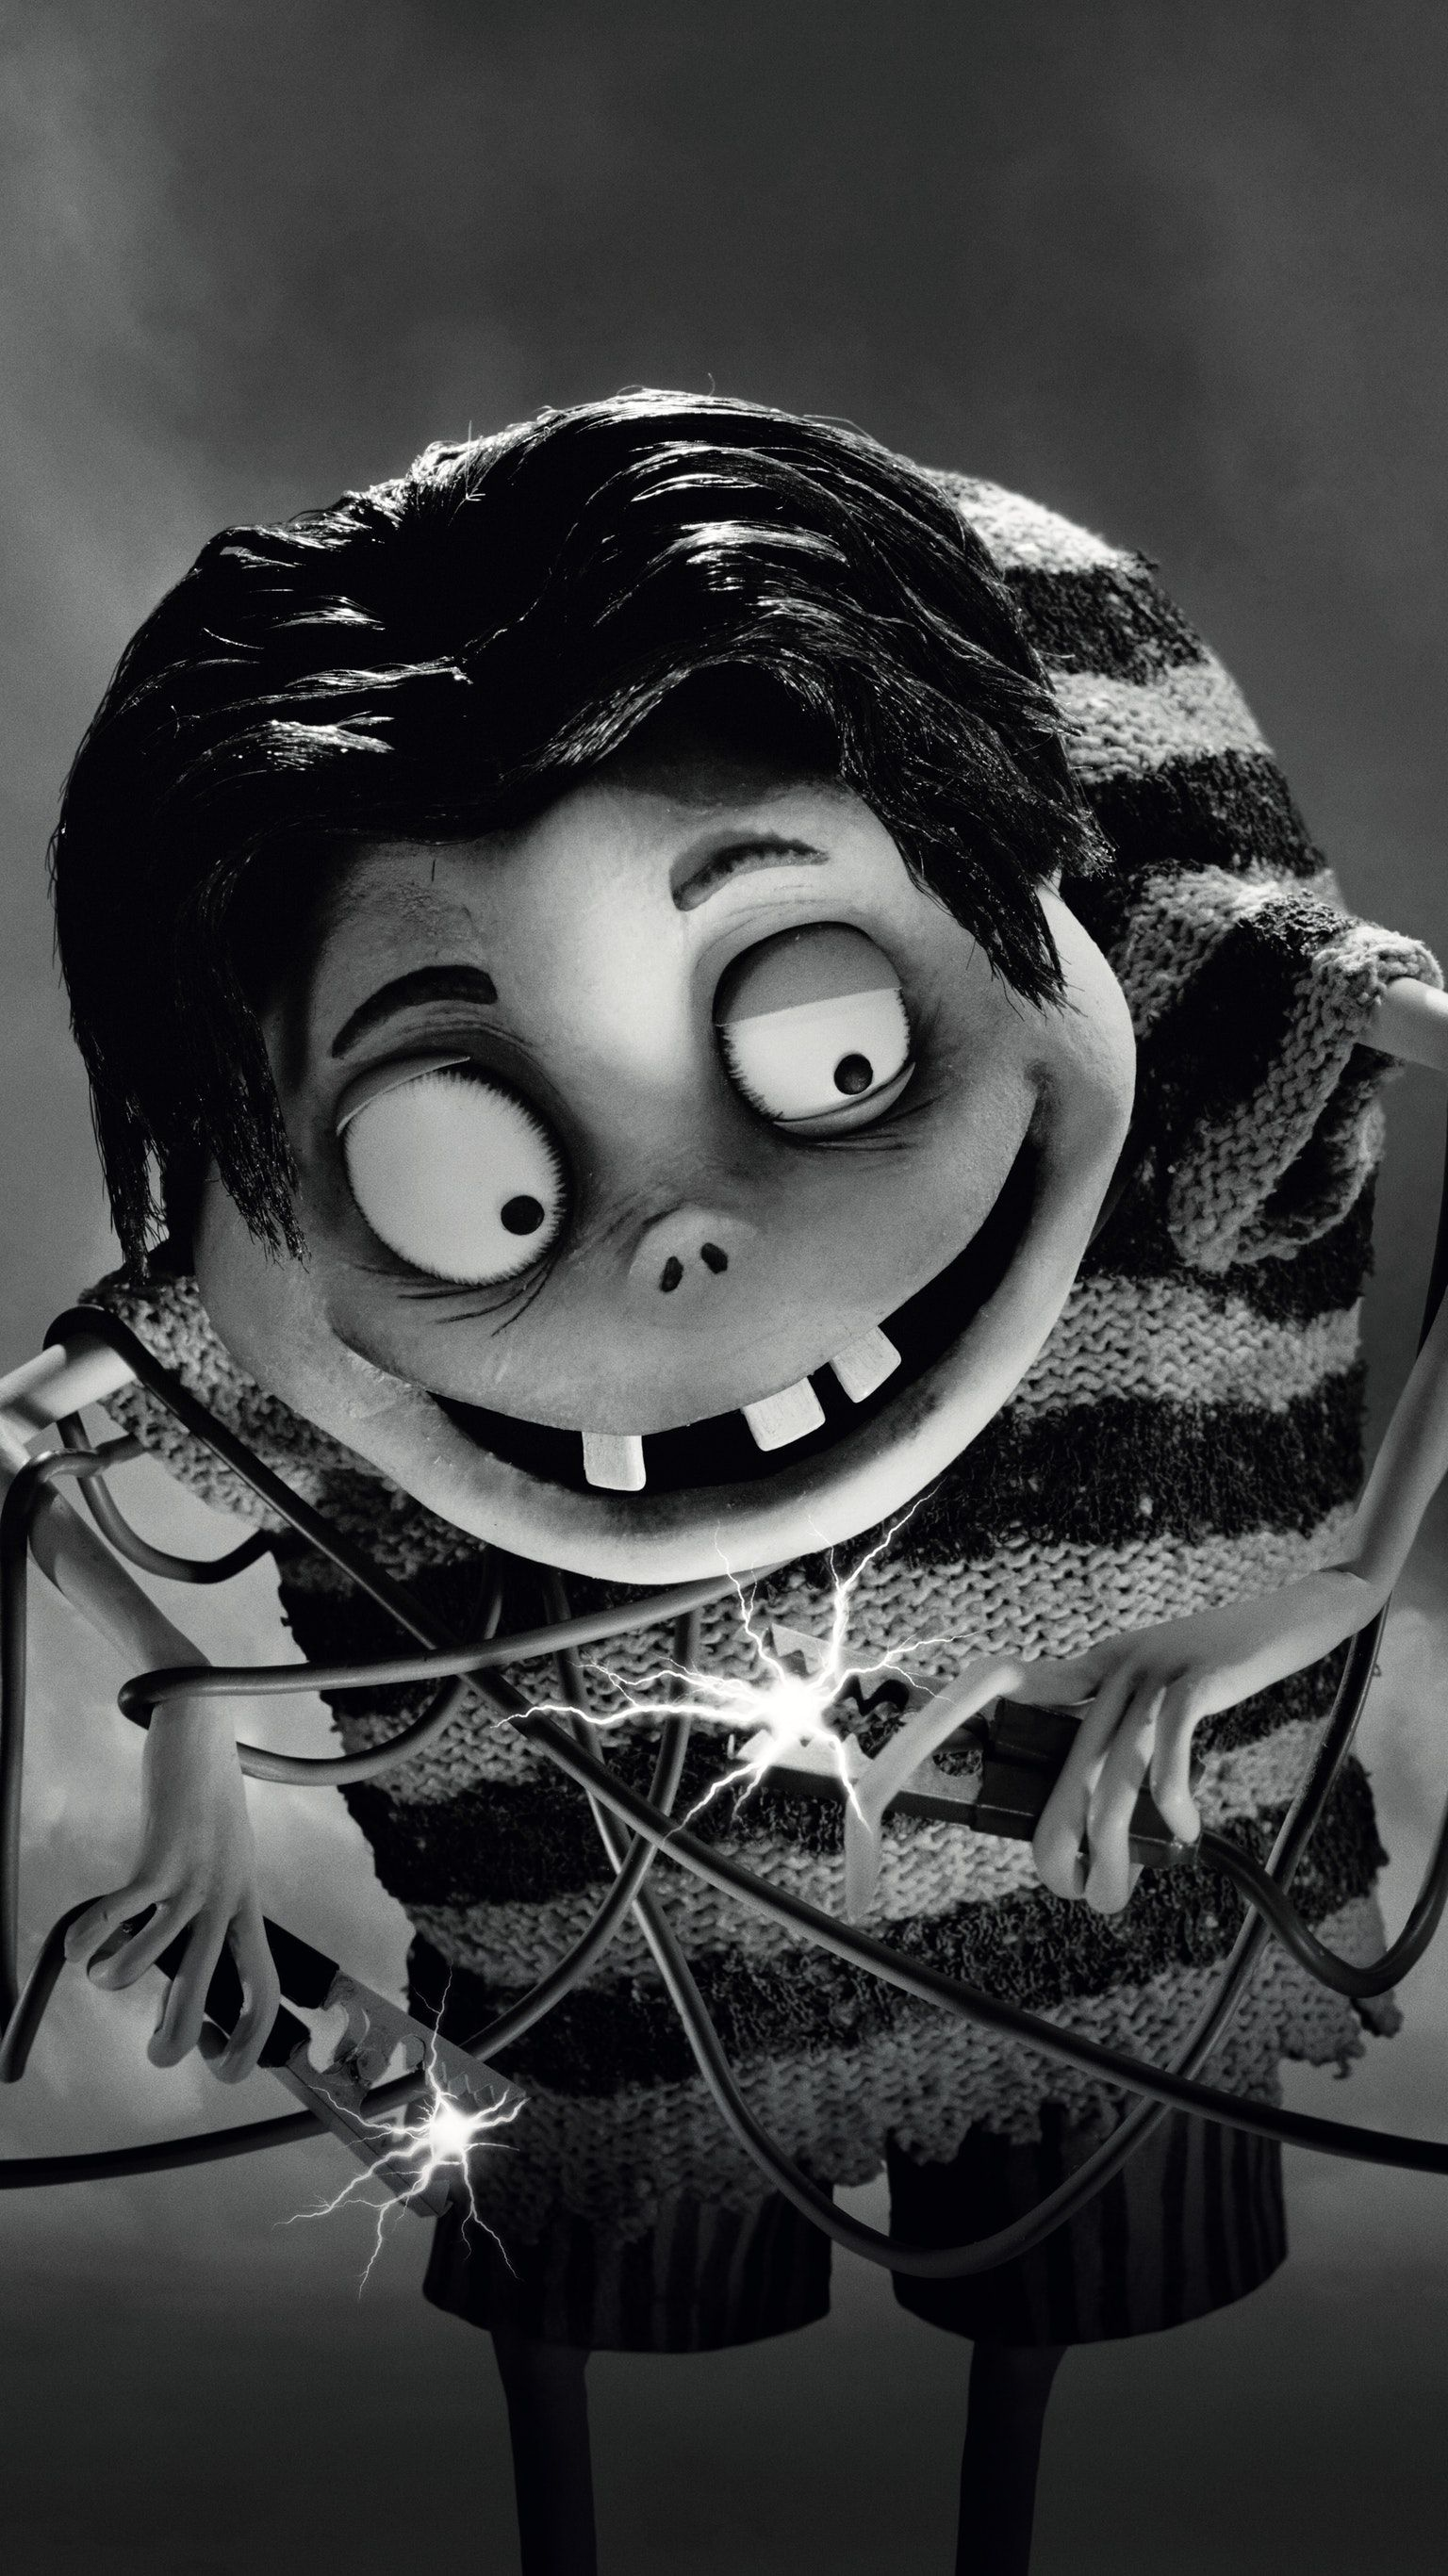 Frankenweenie 2012 Phone Wallpaper Moviemania Full Movies Online Free Streaming Movies Free Full Movies Online